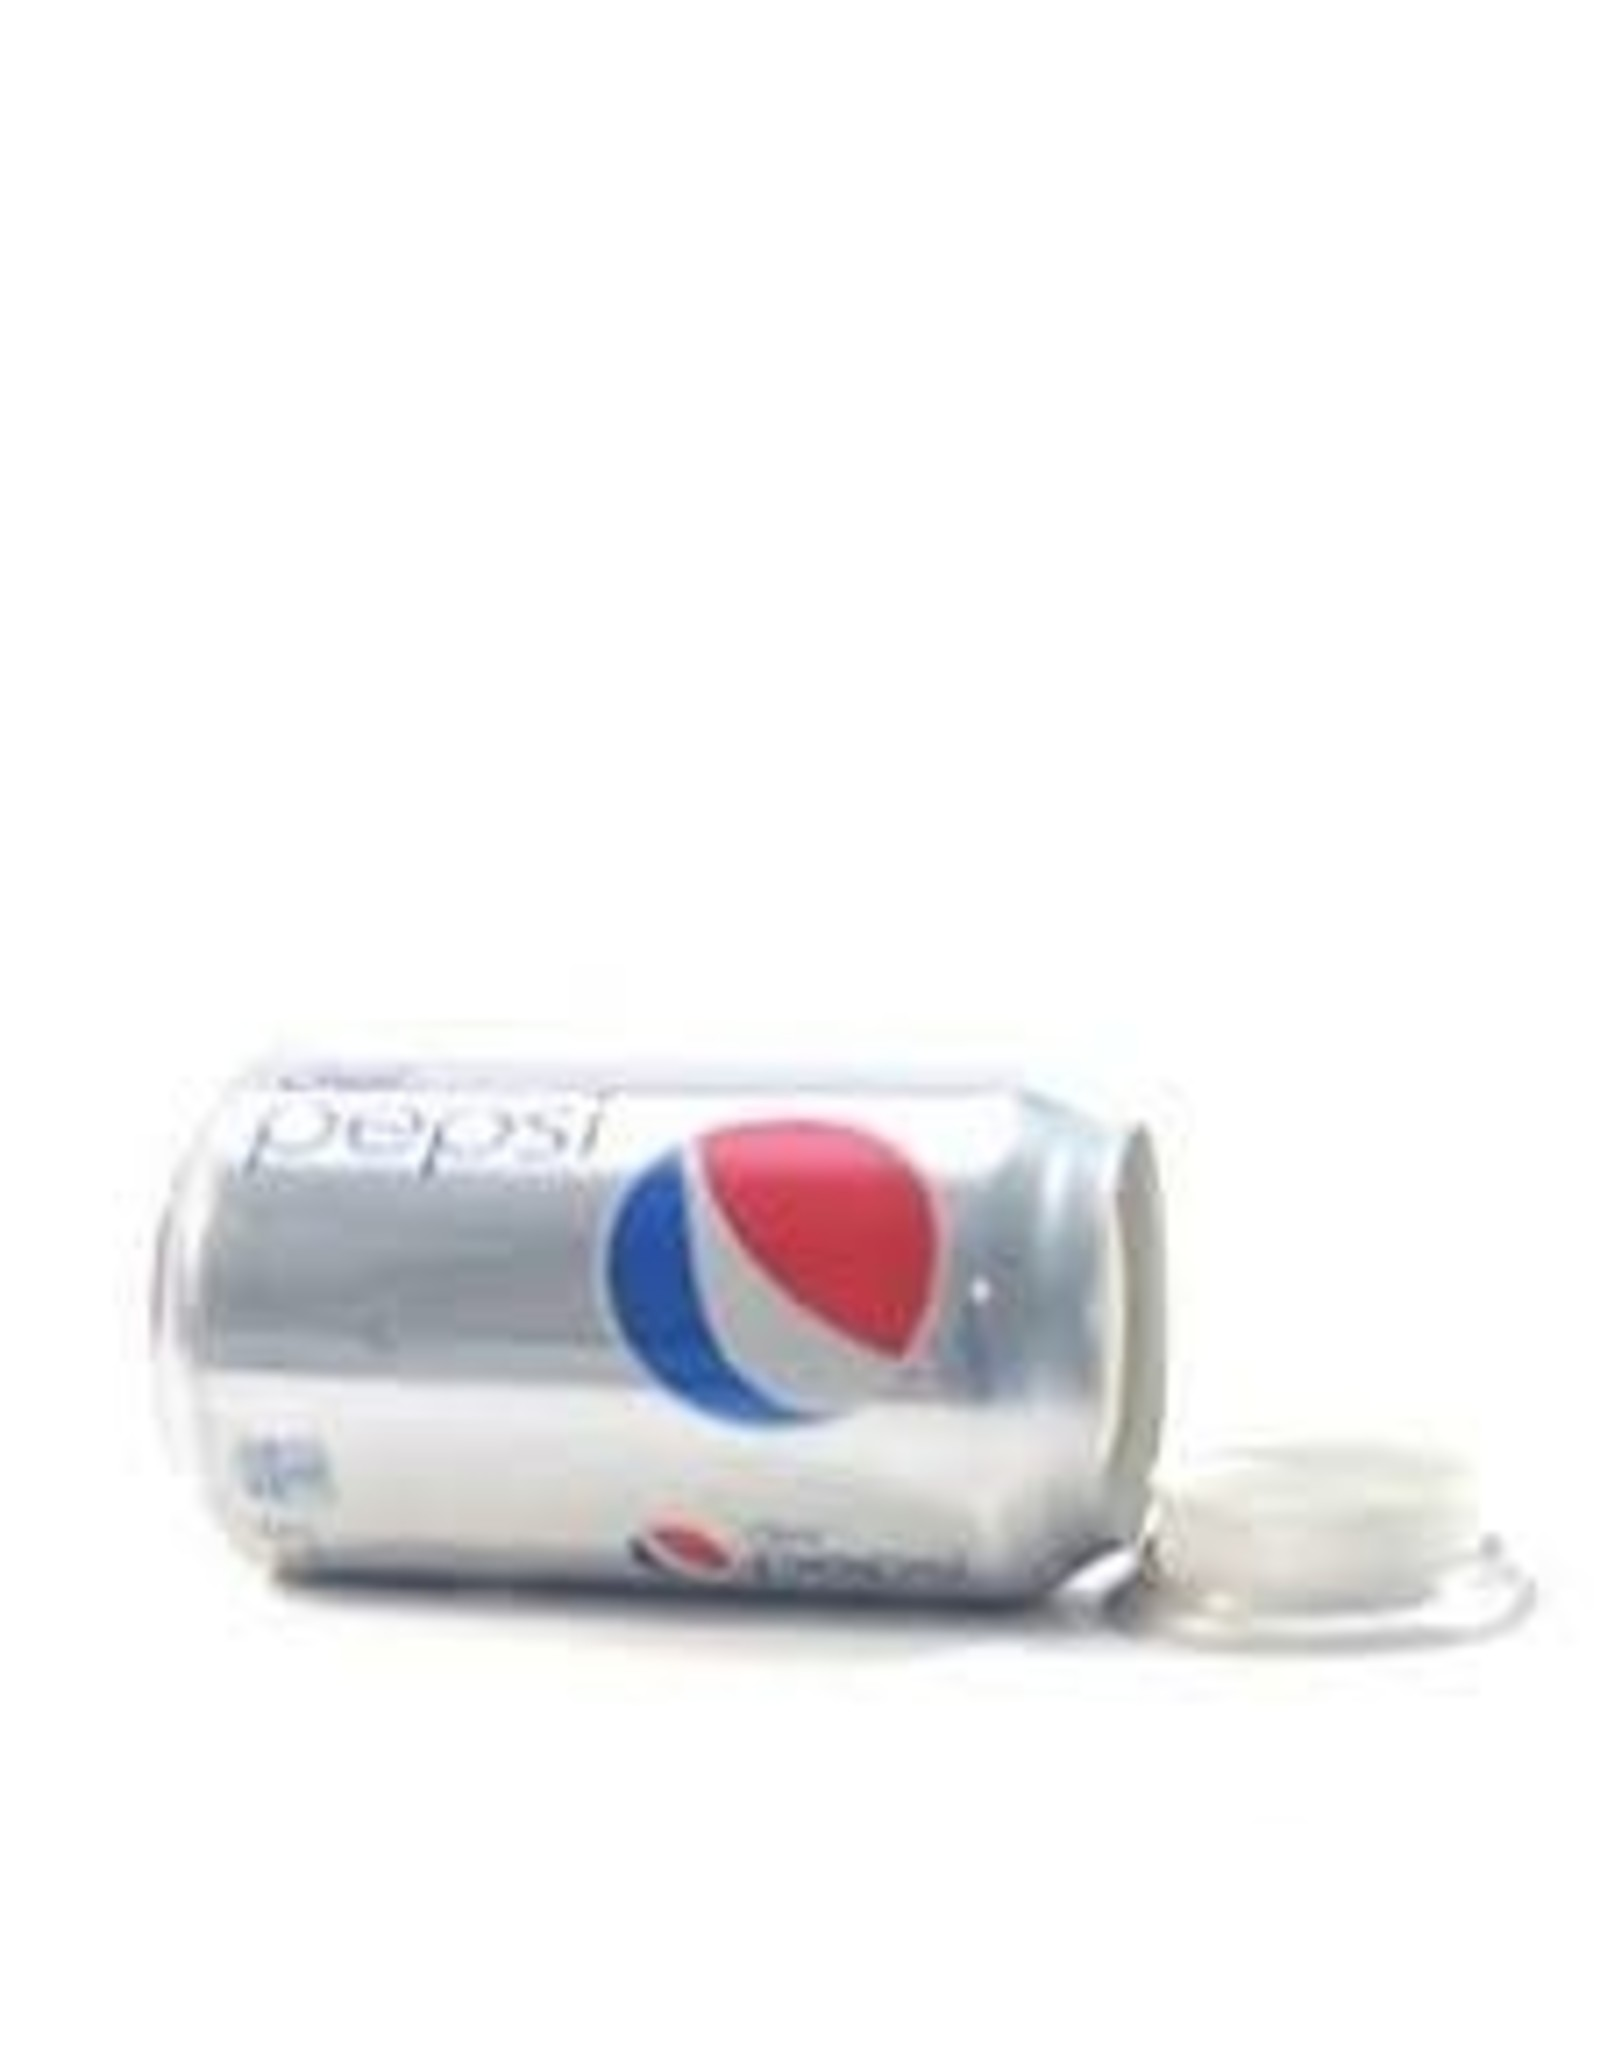 DIVERSION DIVERSION SAFES DIET PEPSI